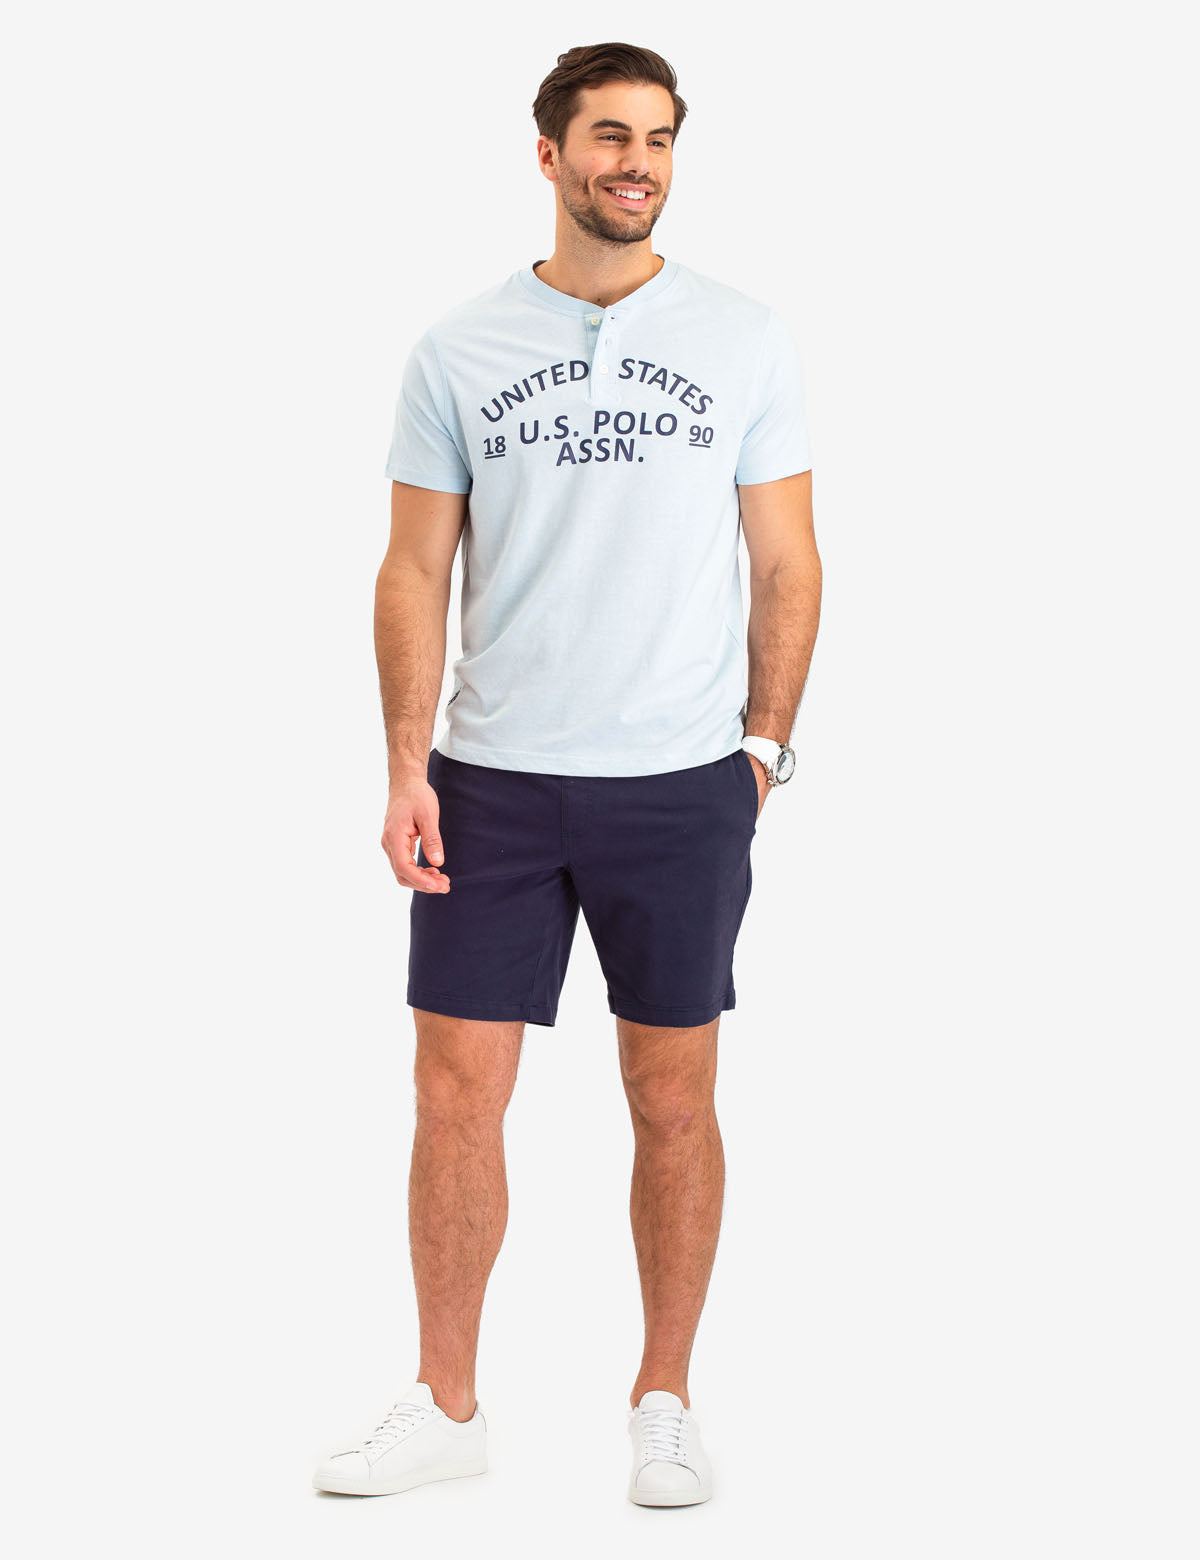 PRINTED HEATHER SHORT SLEEVE HENLEY - U.S. Polo Assn.